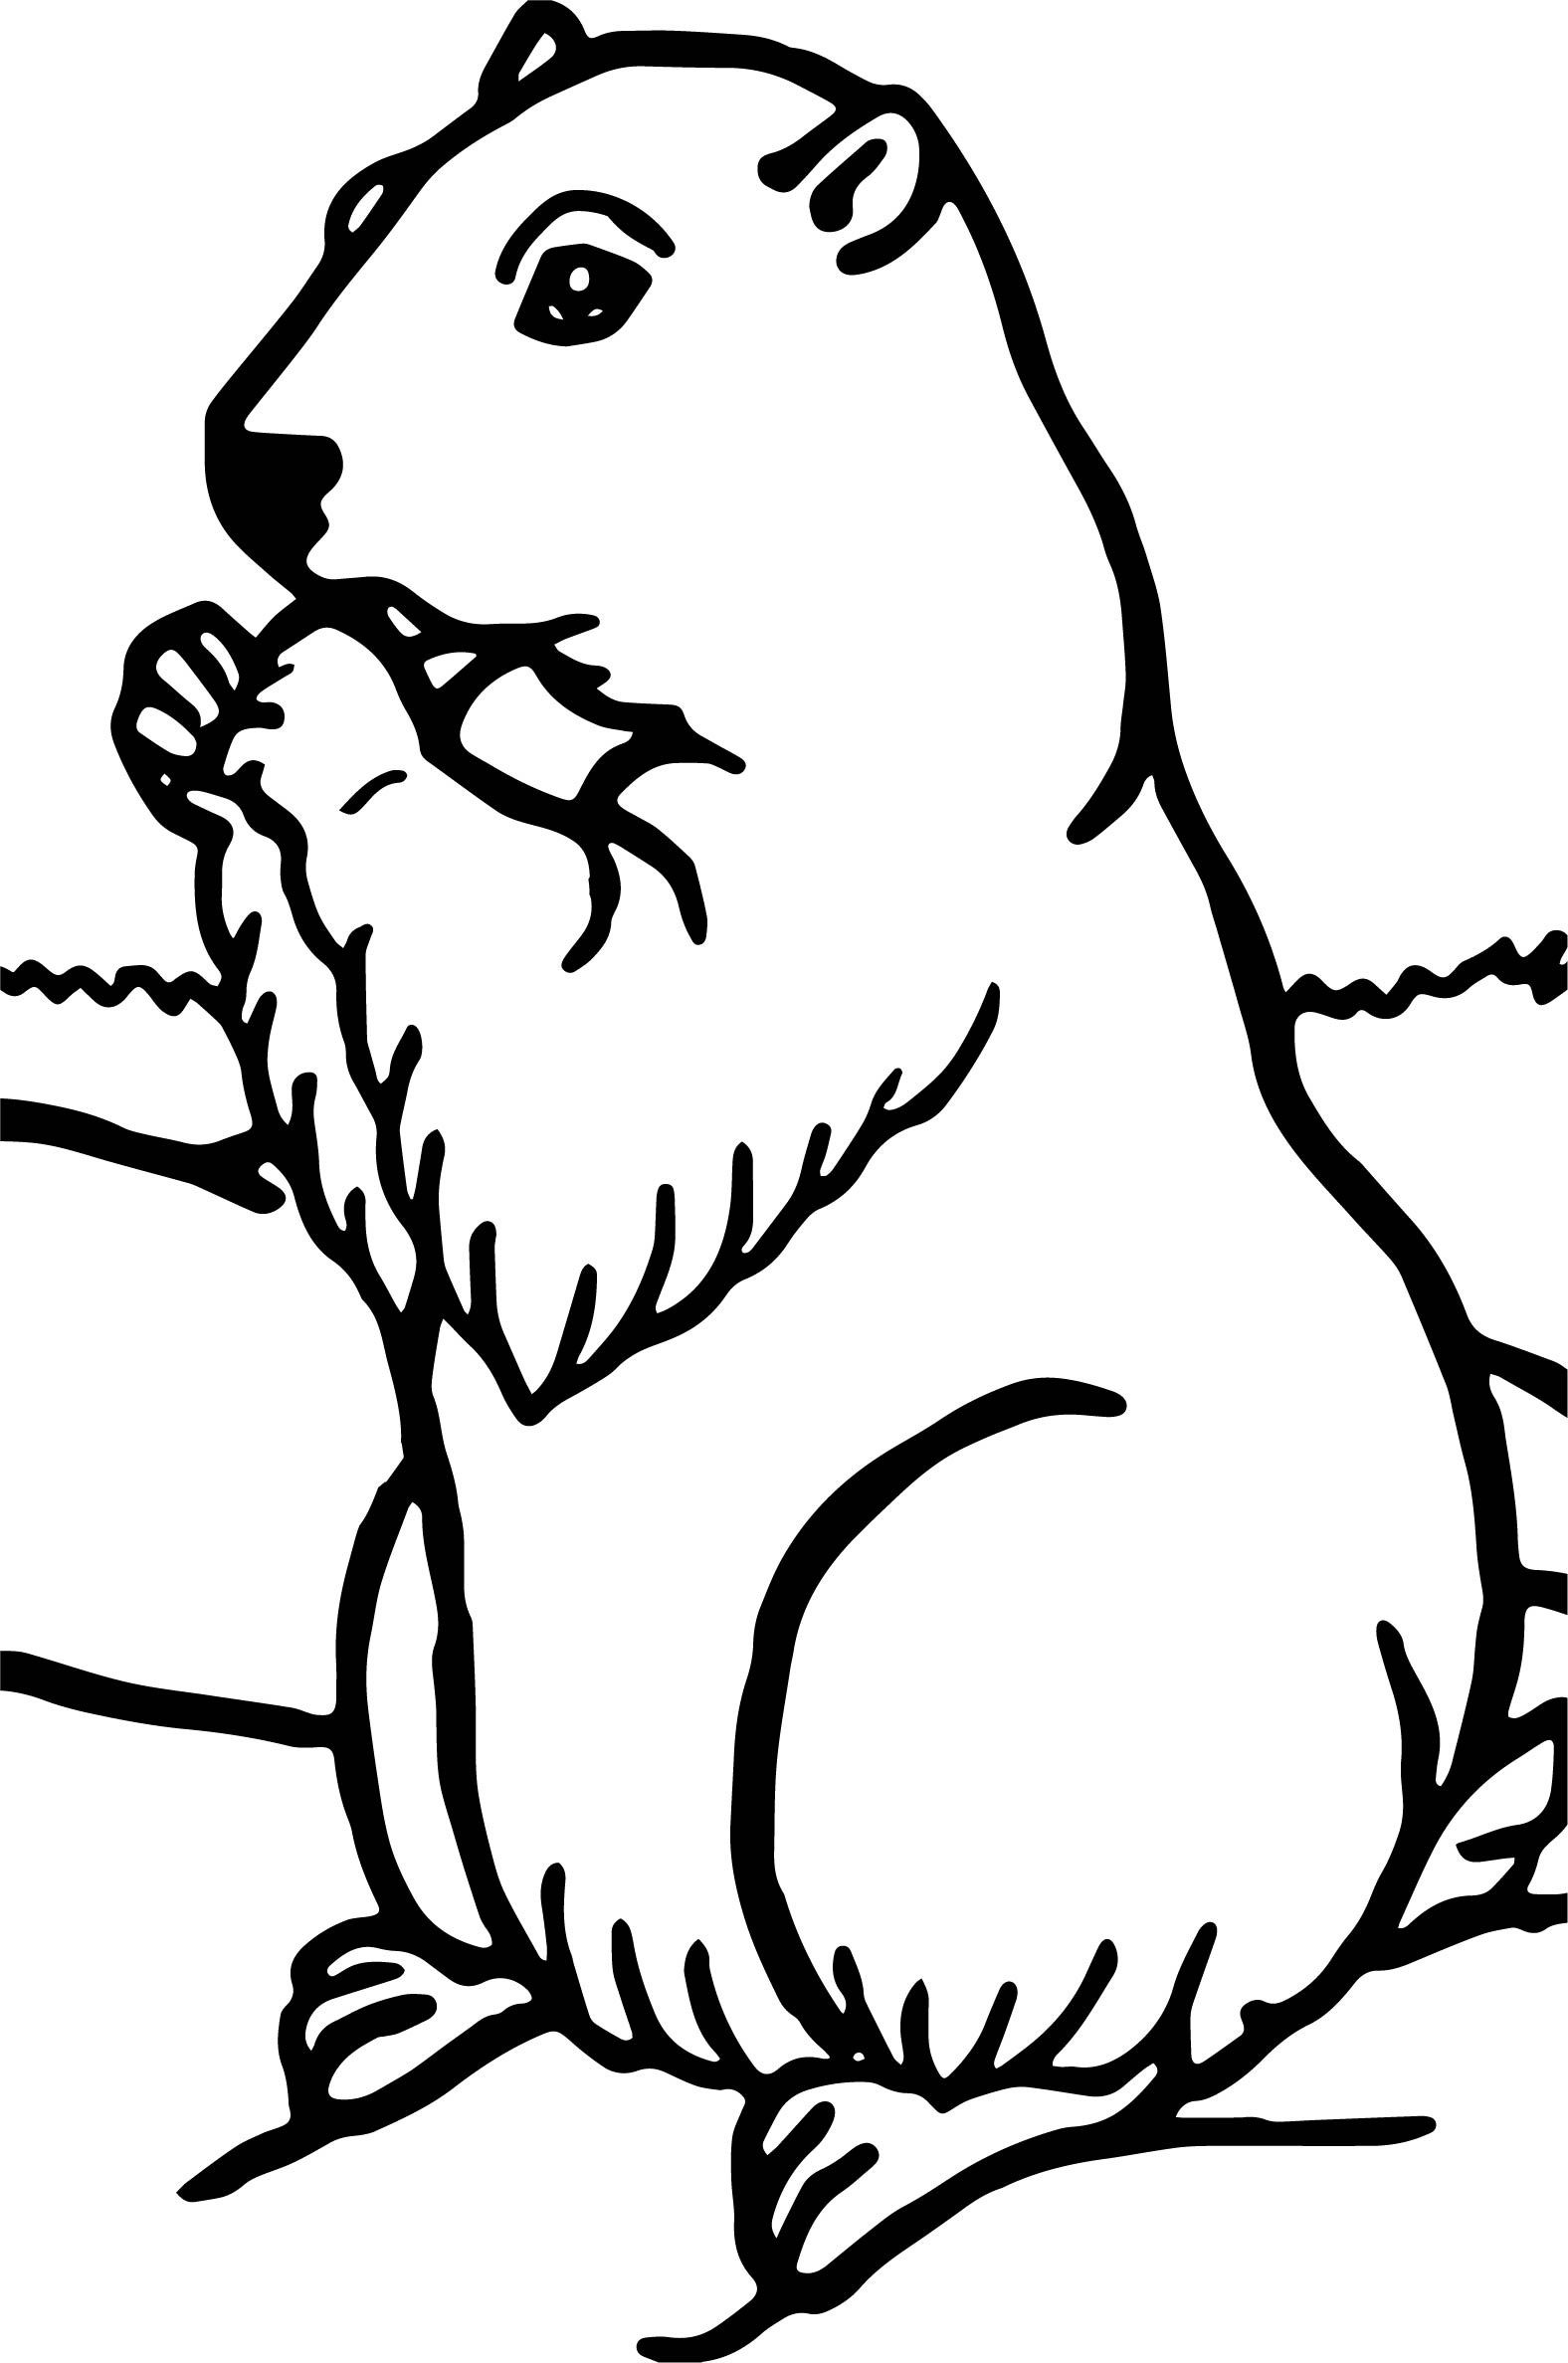 groundhog coloring page groundhog daychildrens stories poems carolyn39s coloring groundhog page